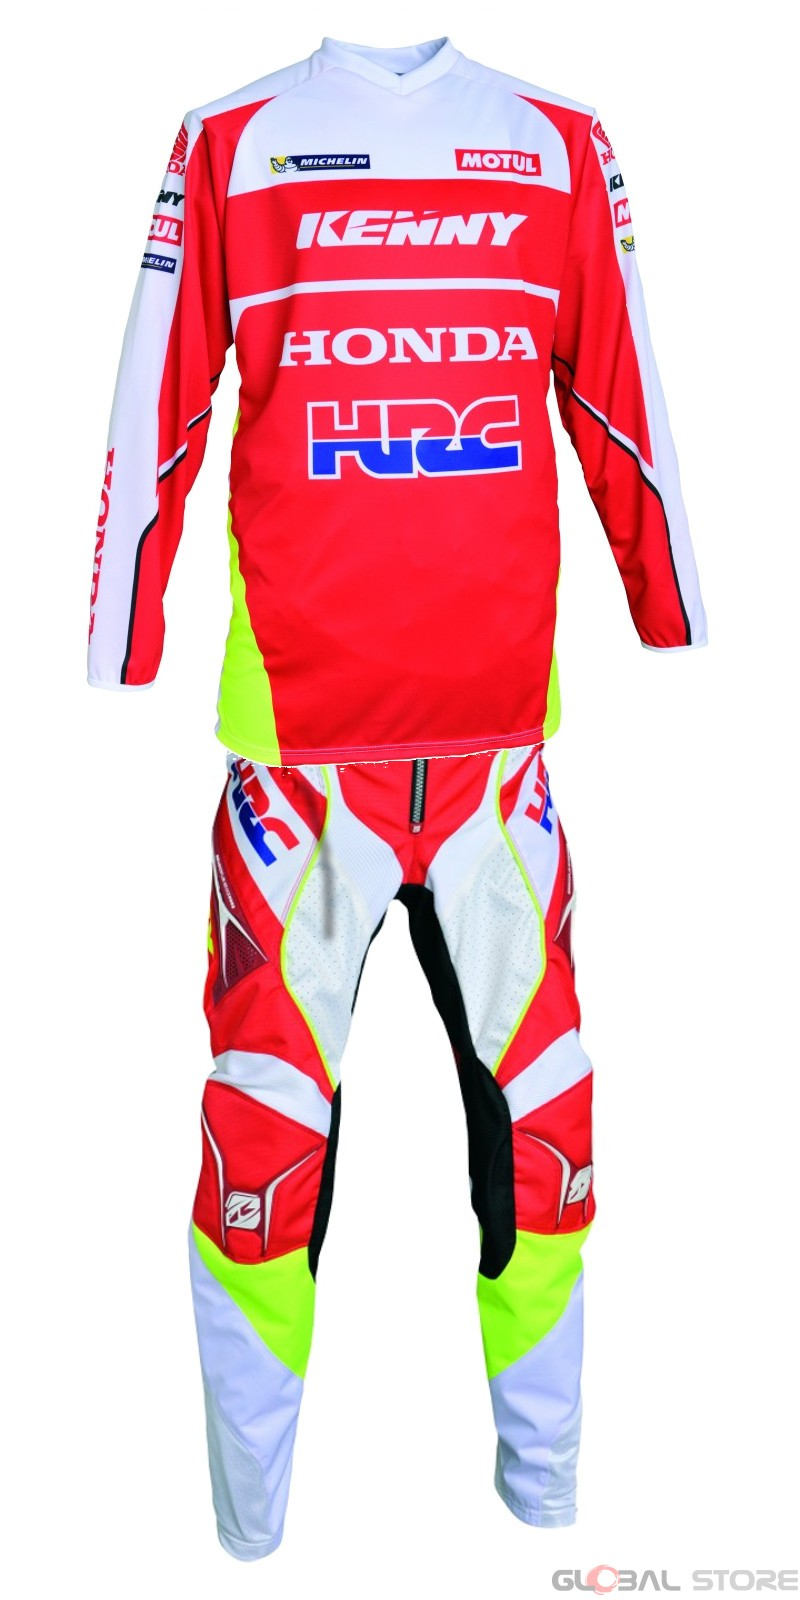 Completo Kenny Honda Hrc Limited Edition Kenny Completi